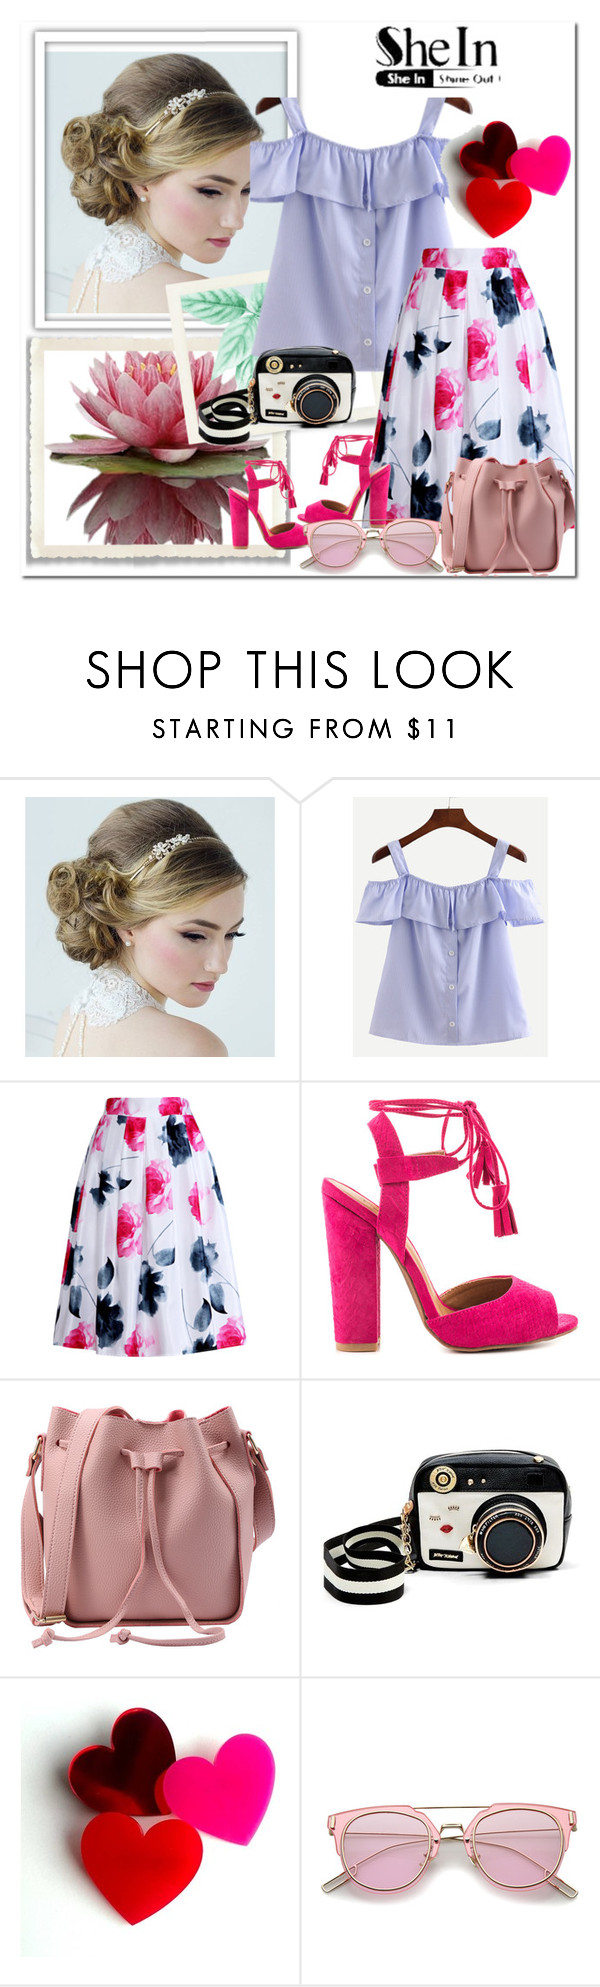 """Shein"" by begajeta2309 ❤ liked on Polyvore featuring Relaxfeel, Qupid and Betsey Johnson"